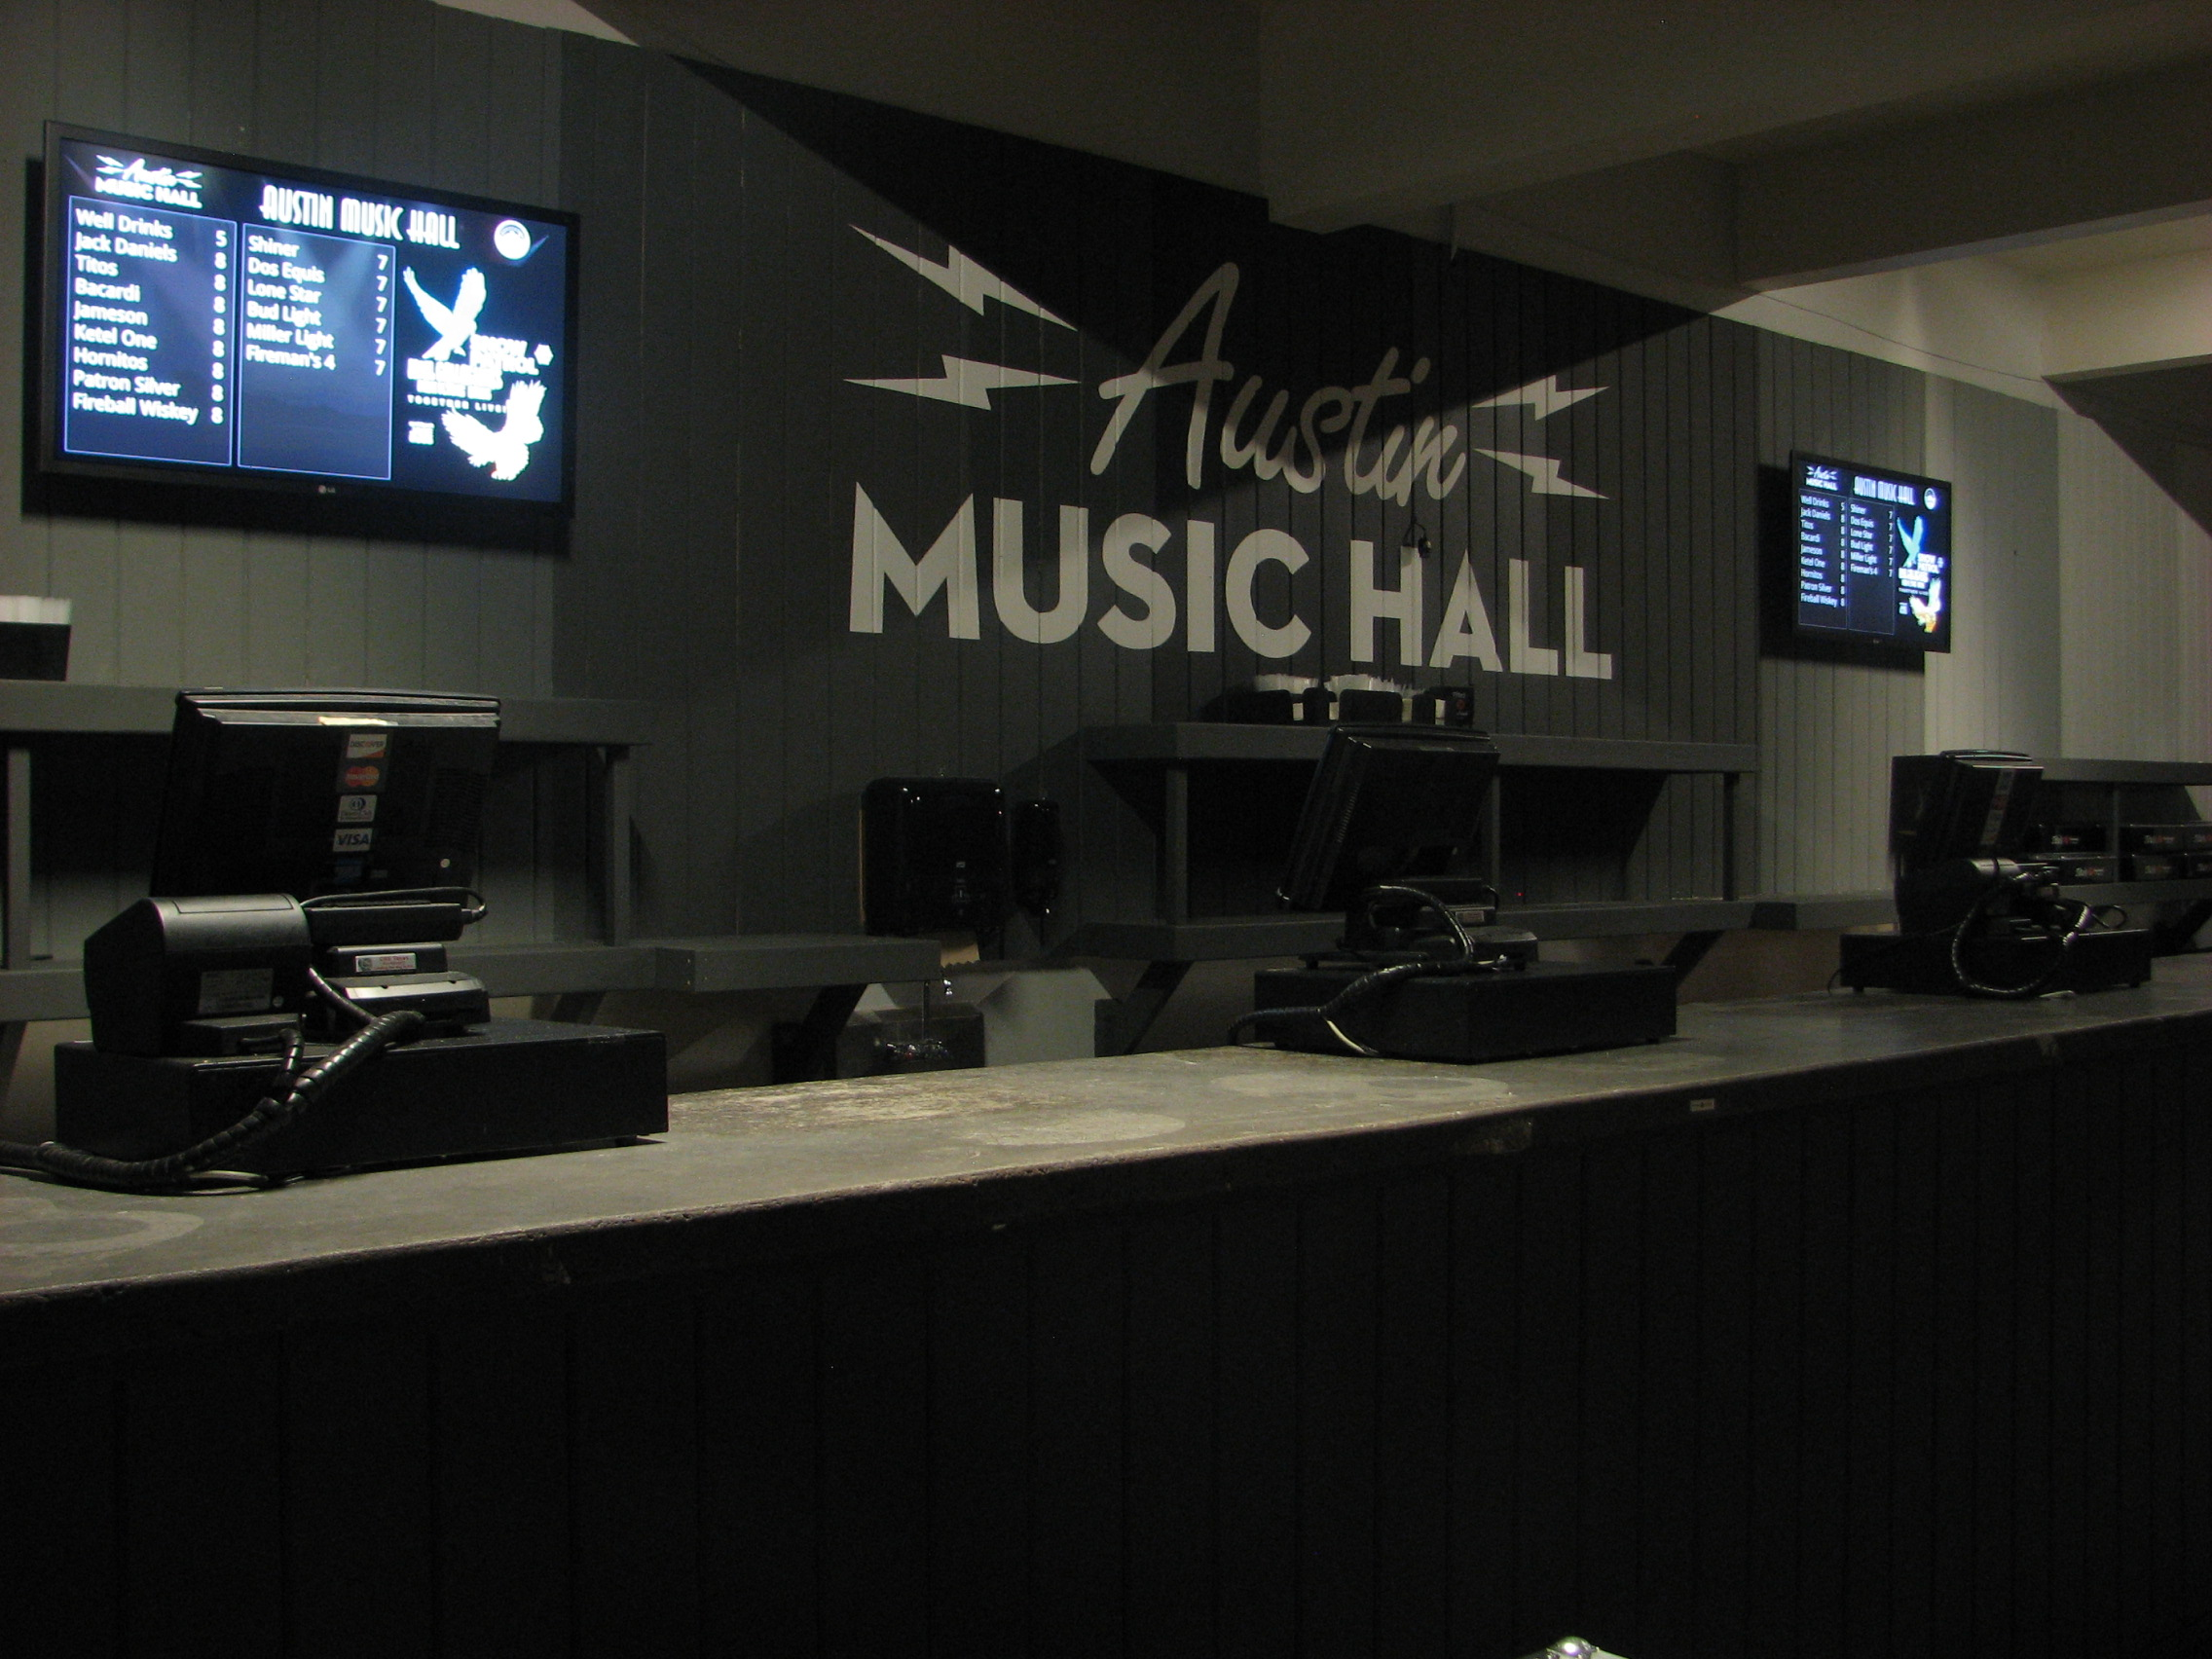 OSM Solutions, LLC provides digital signage for Austin Music Hall